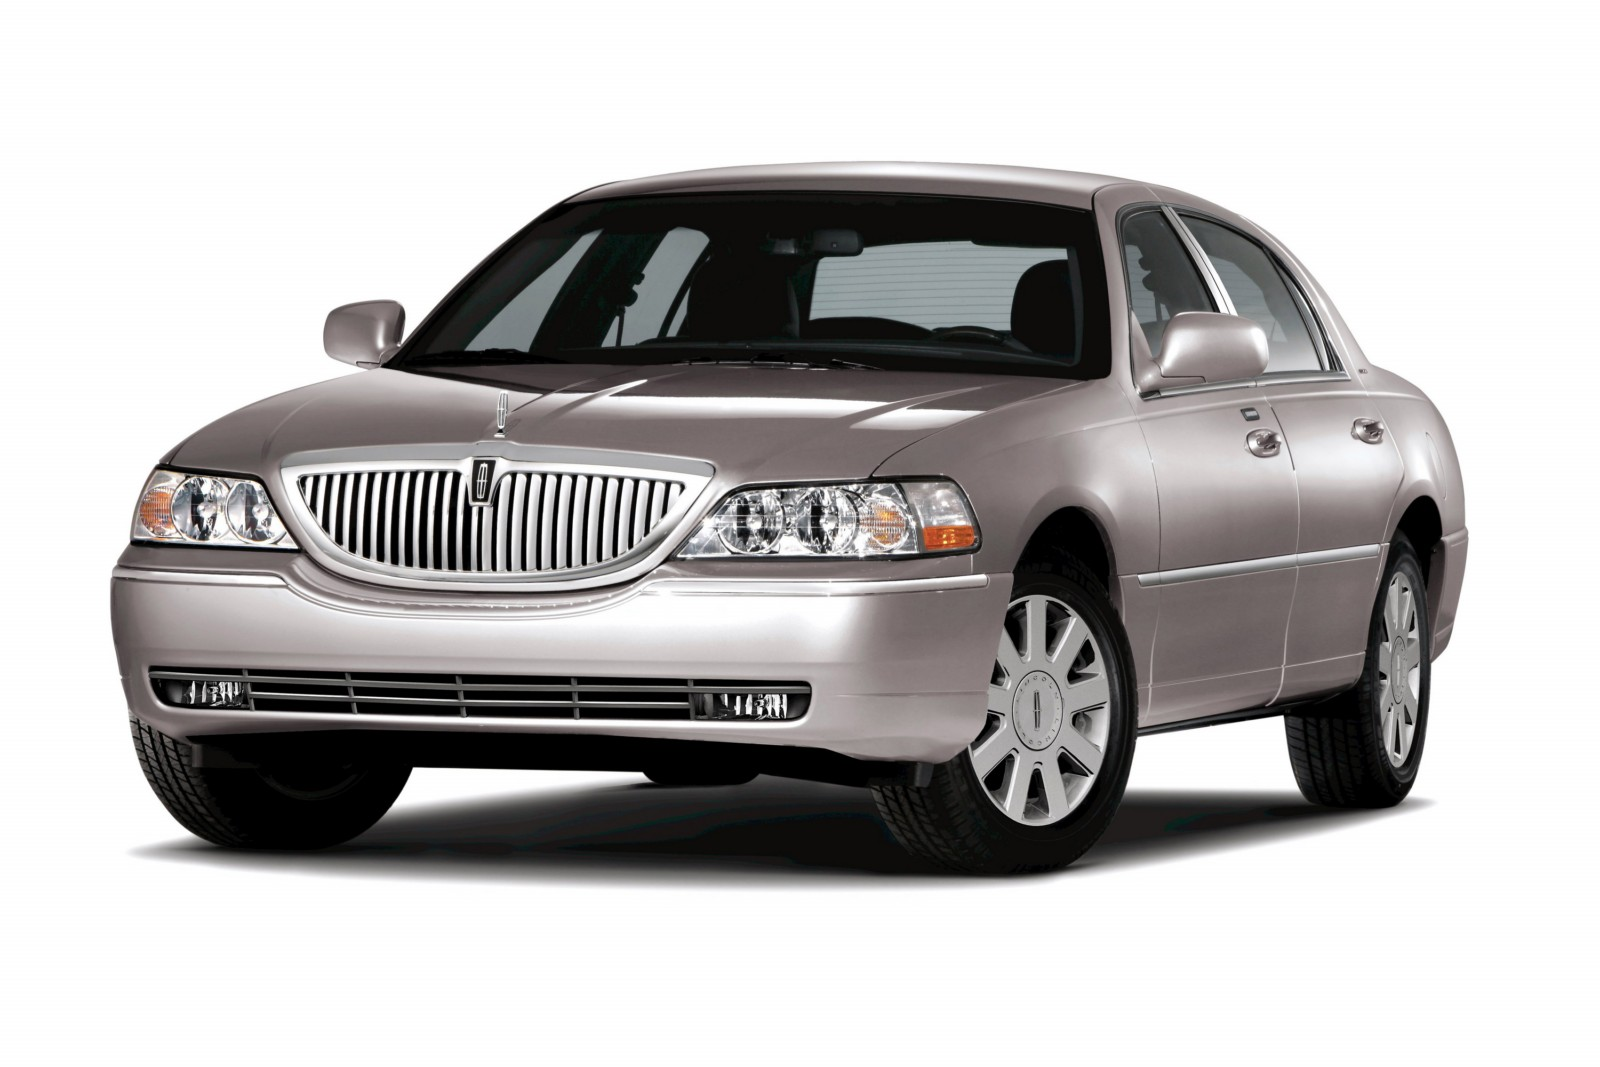 2010 Lincoln Town Car Review Ratings Specs Prices And